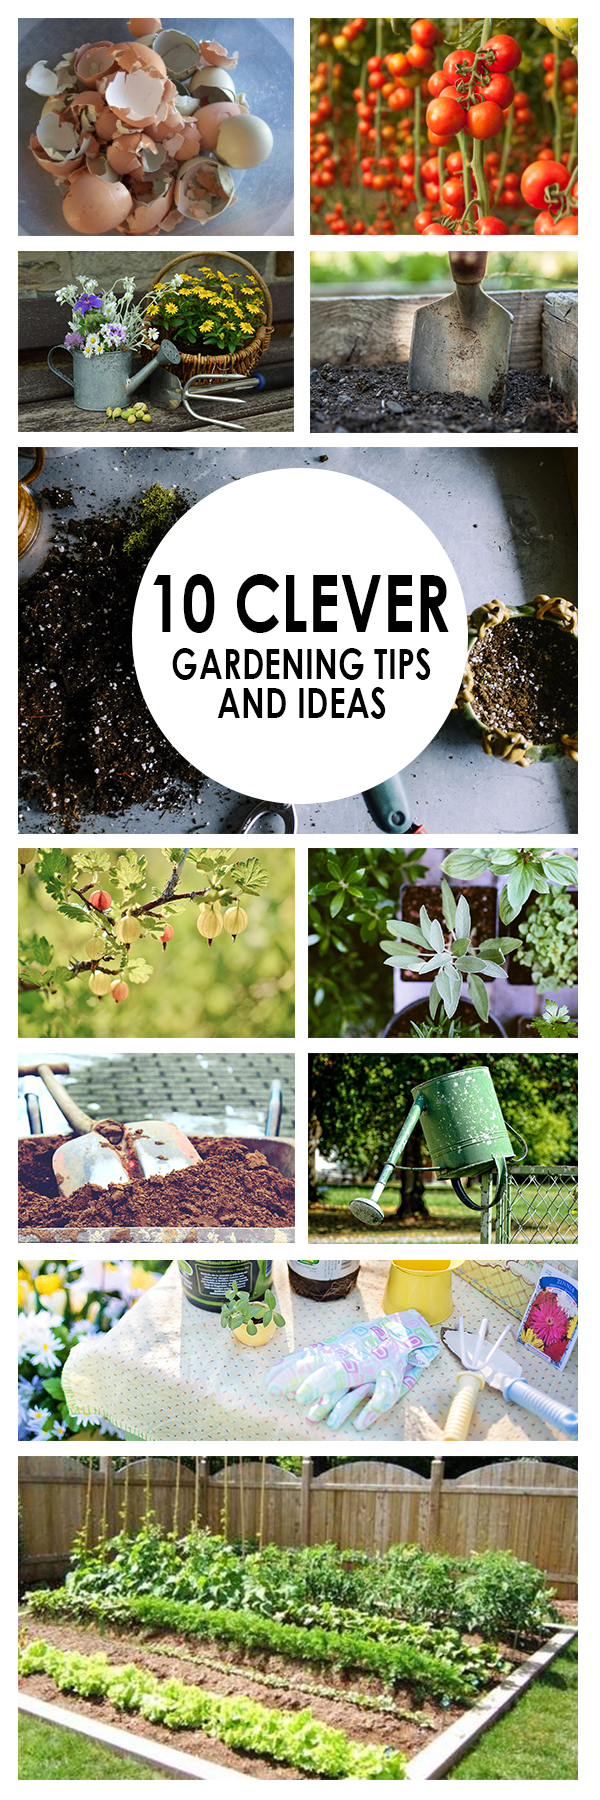 10 Clever Gardening Tips and Ideas (1)